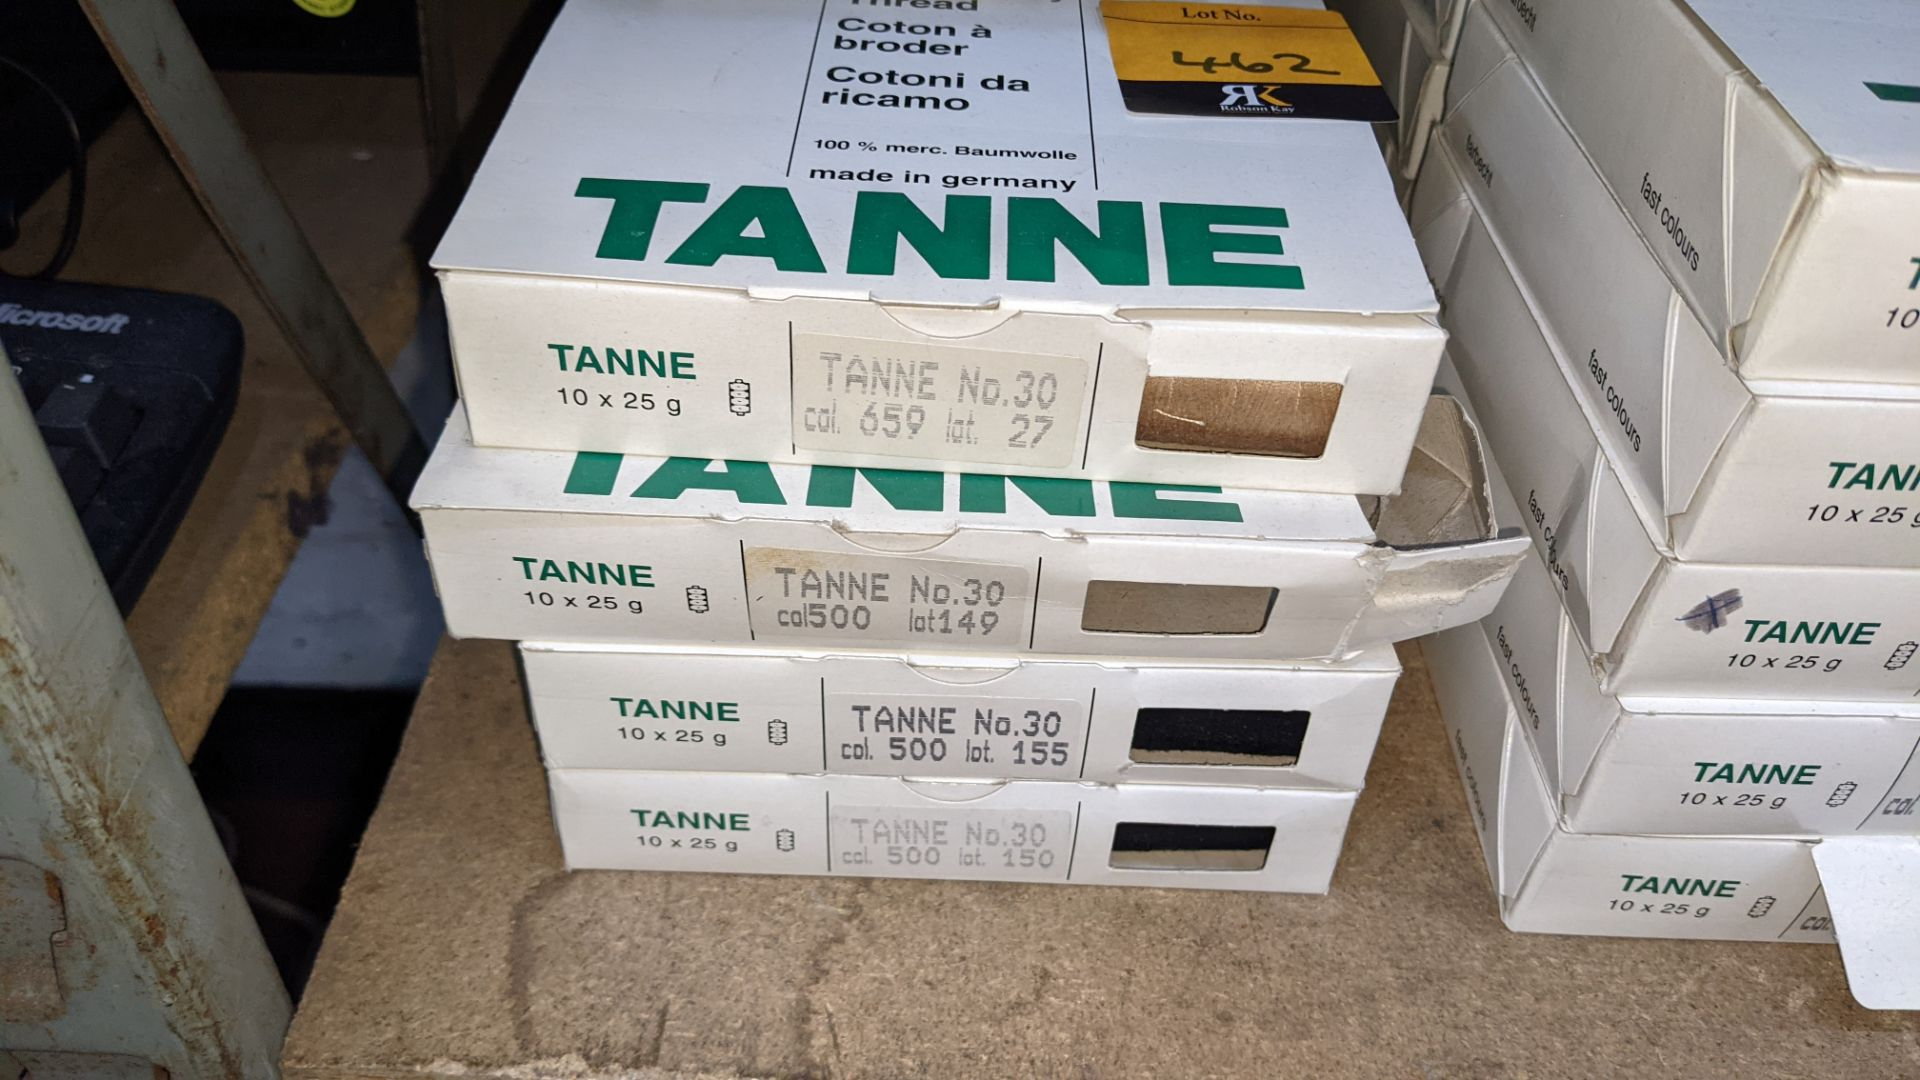 14 boxes of Madeira Tanne (Burmit) cotton embroidery thread - Image 3 of 8